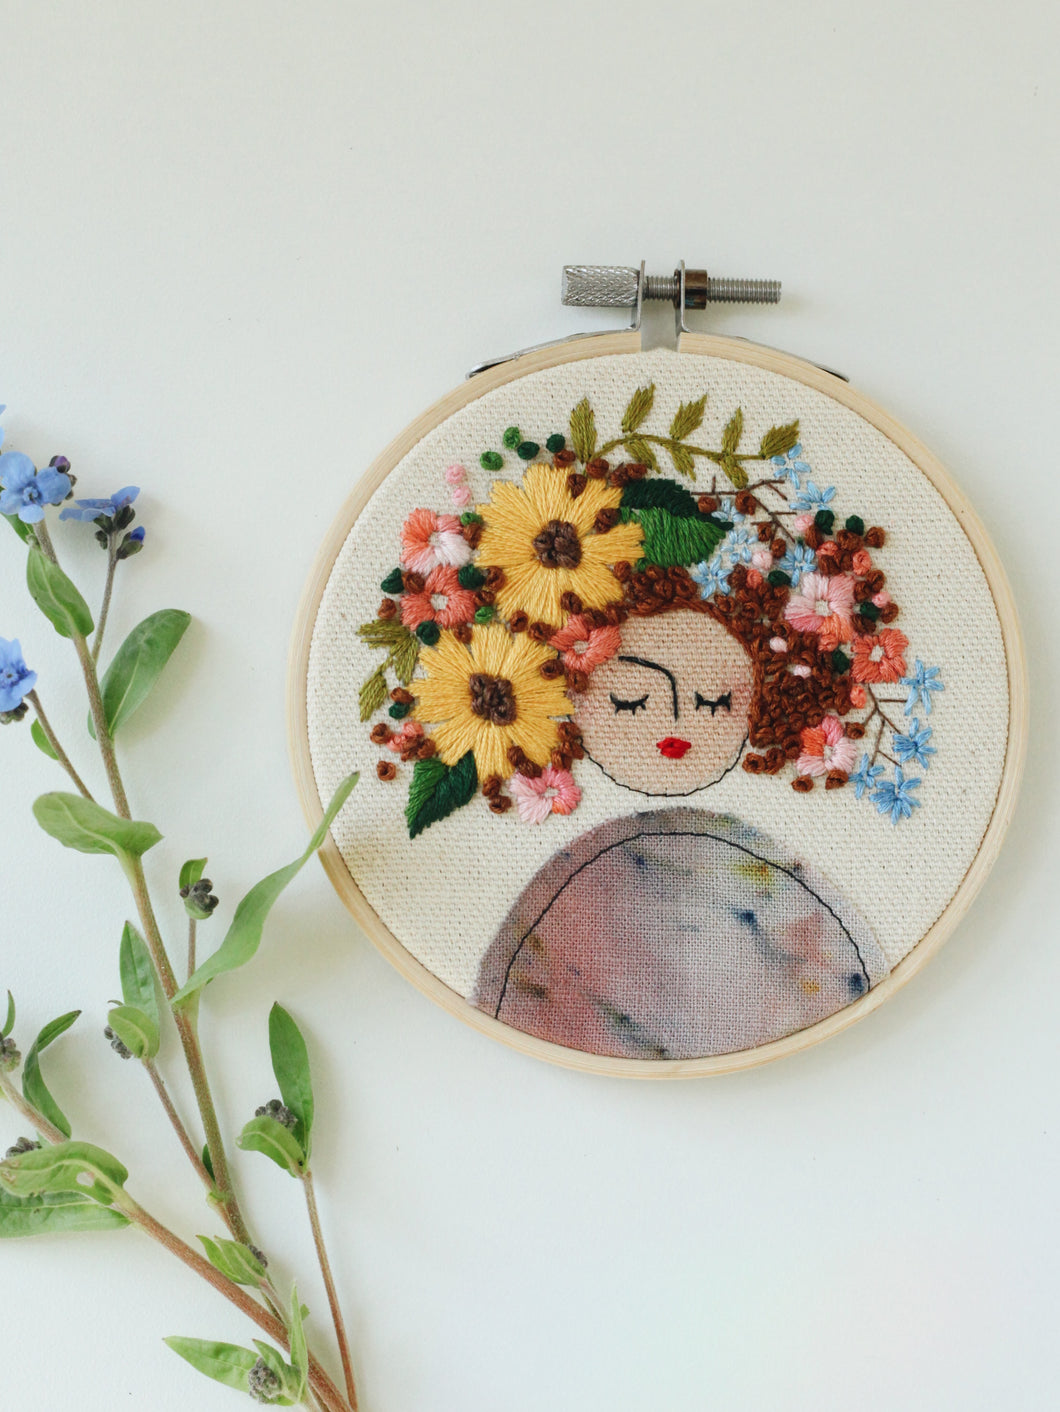 Mini Flower Head with Sunflowers